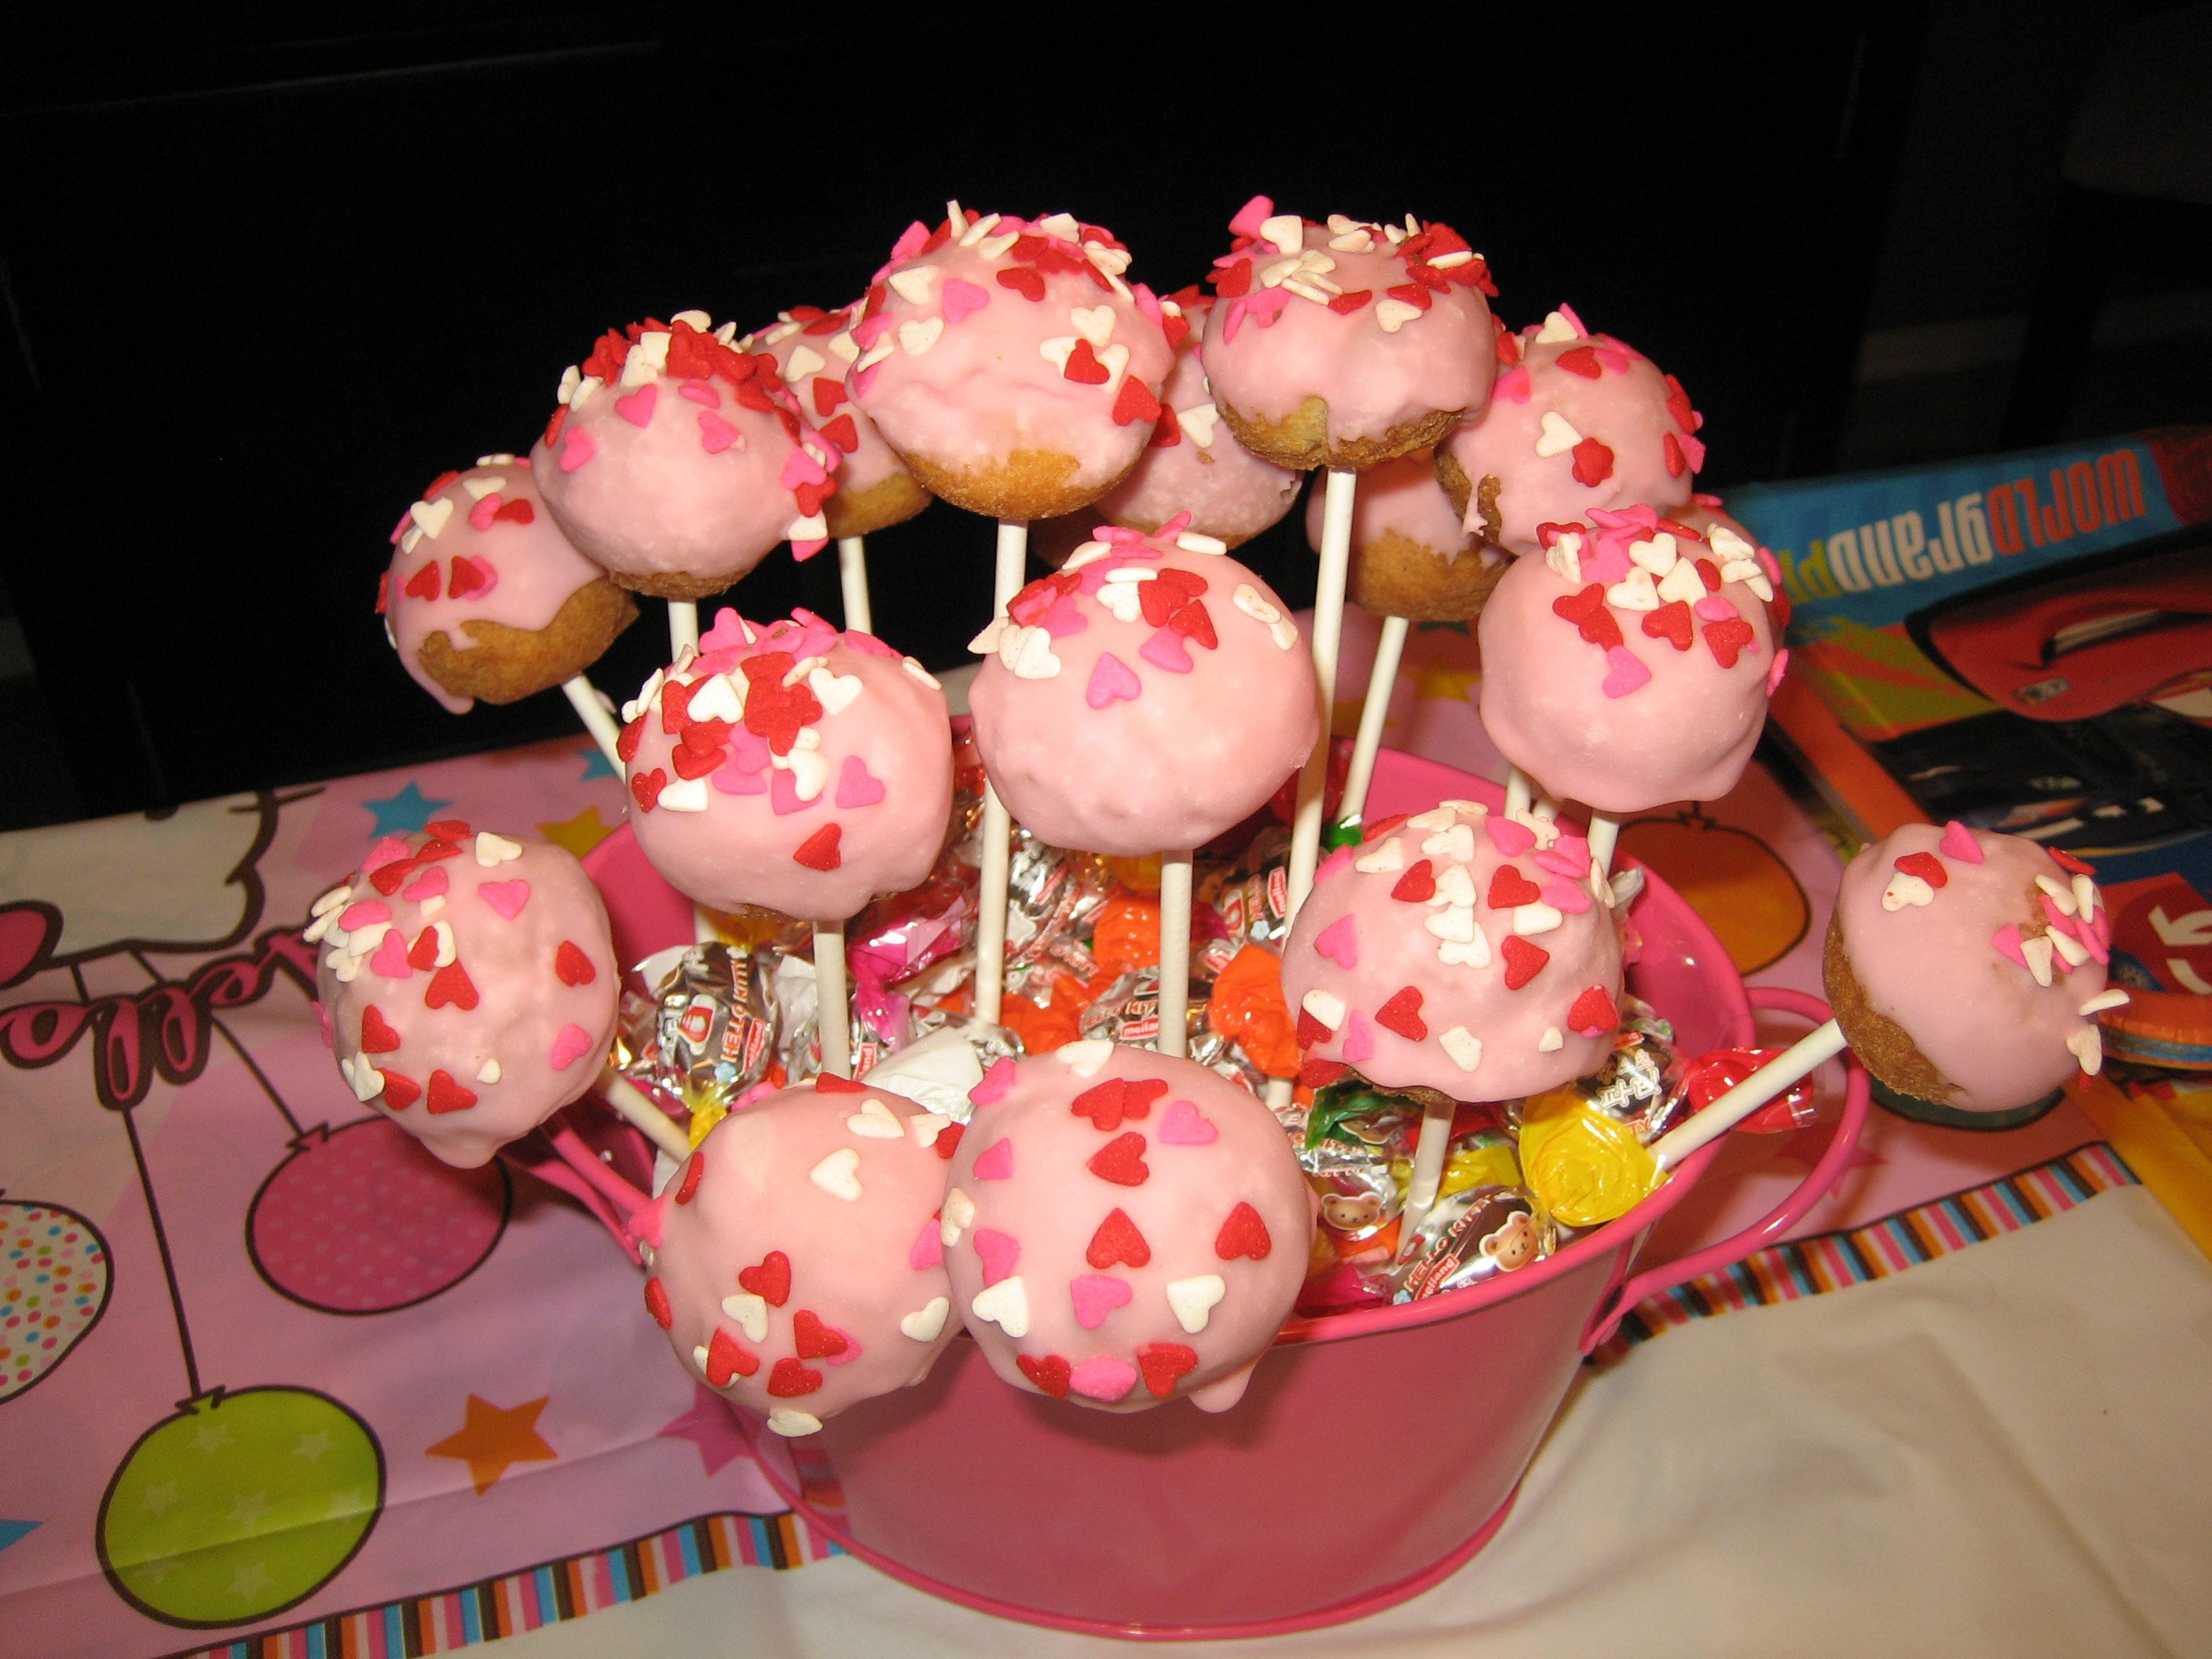 Cake pops donut holes from dunkin donuts frosting and